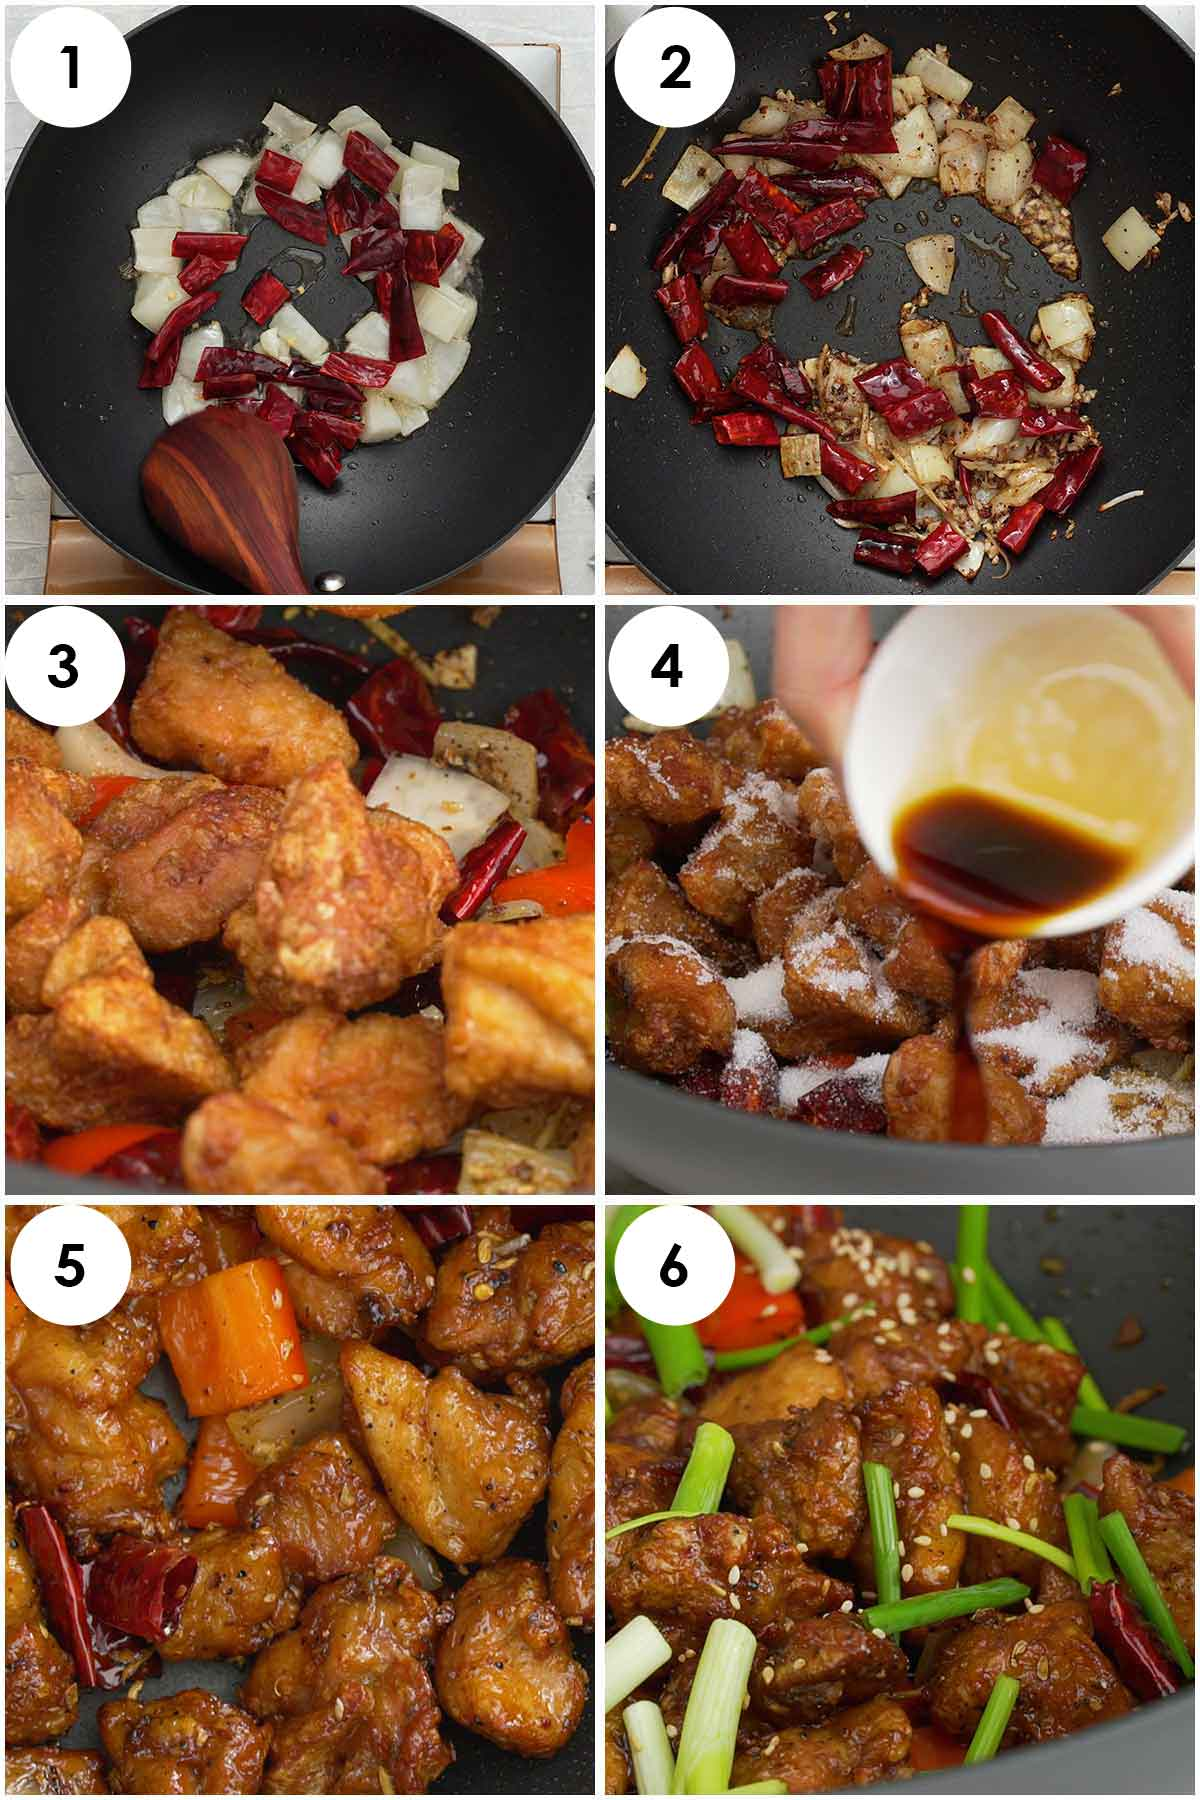 Six image collage showing how to make Szechuan Chicken.